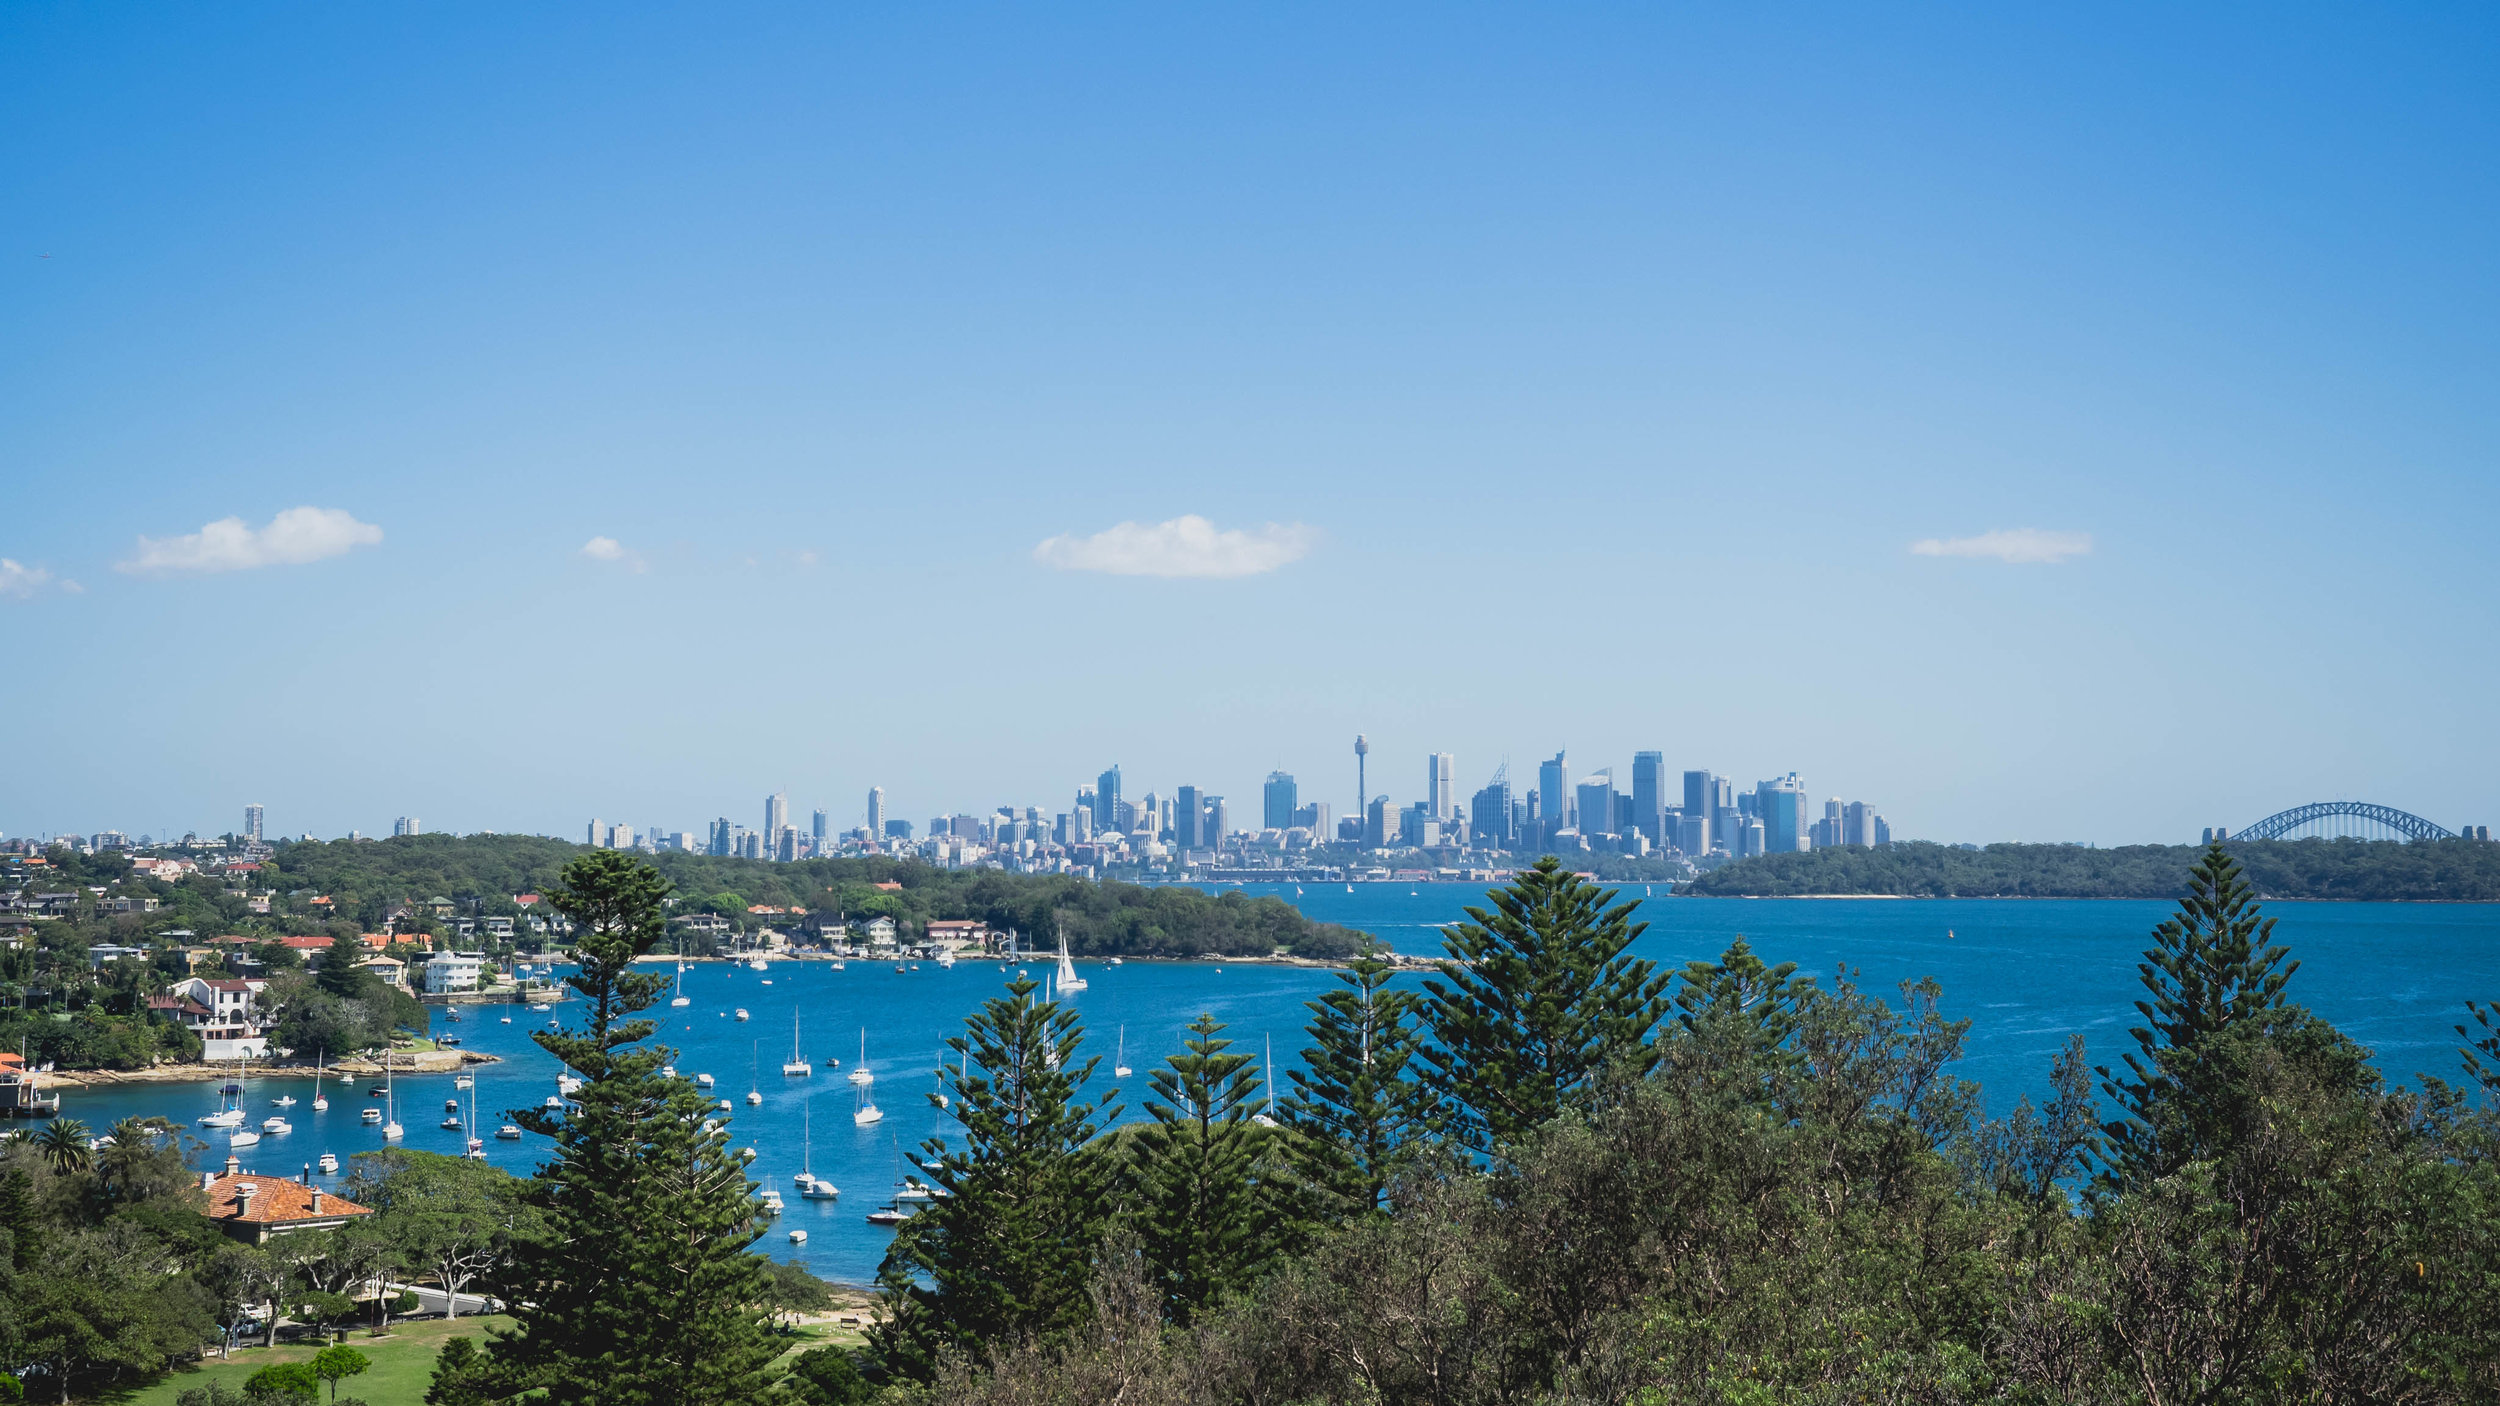 view of they city from watson's bay.